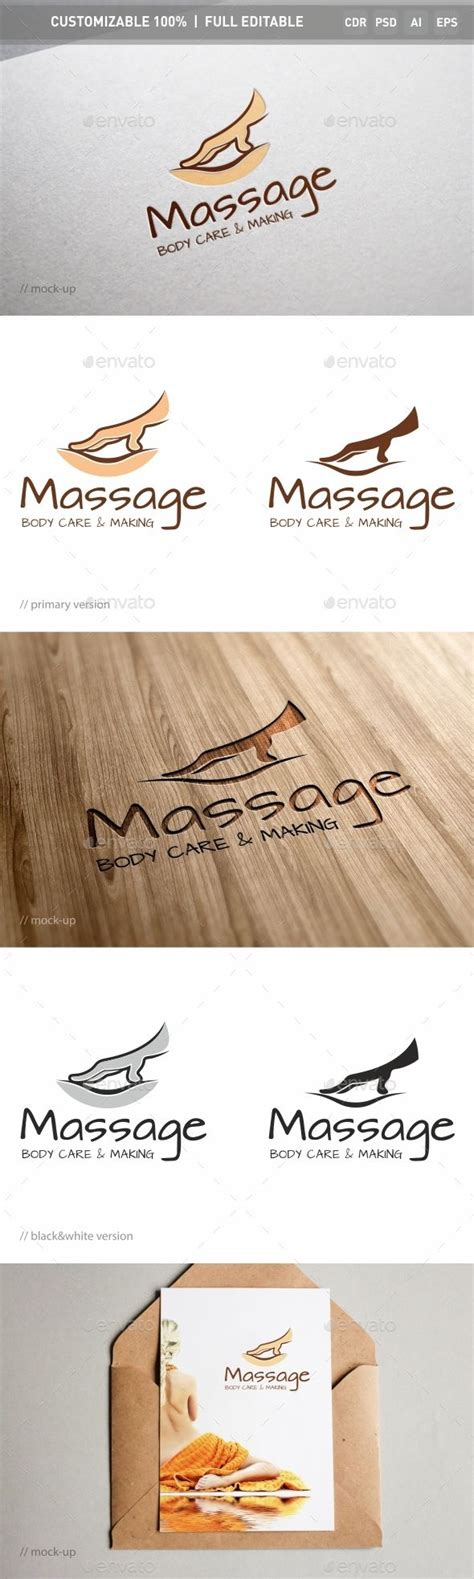 therapy business card psd template best 25 logo ideas on zen logo